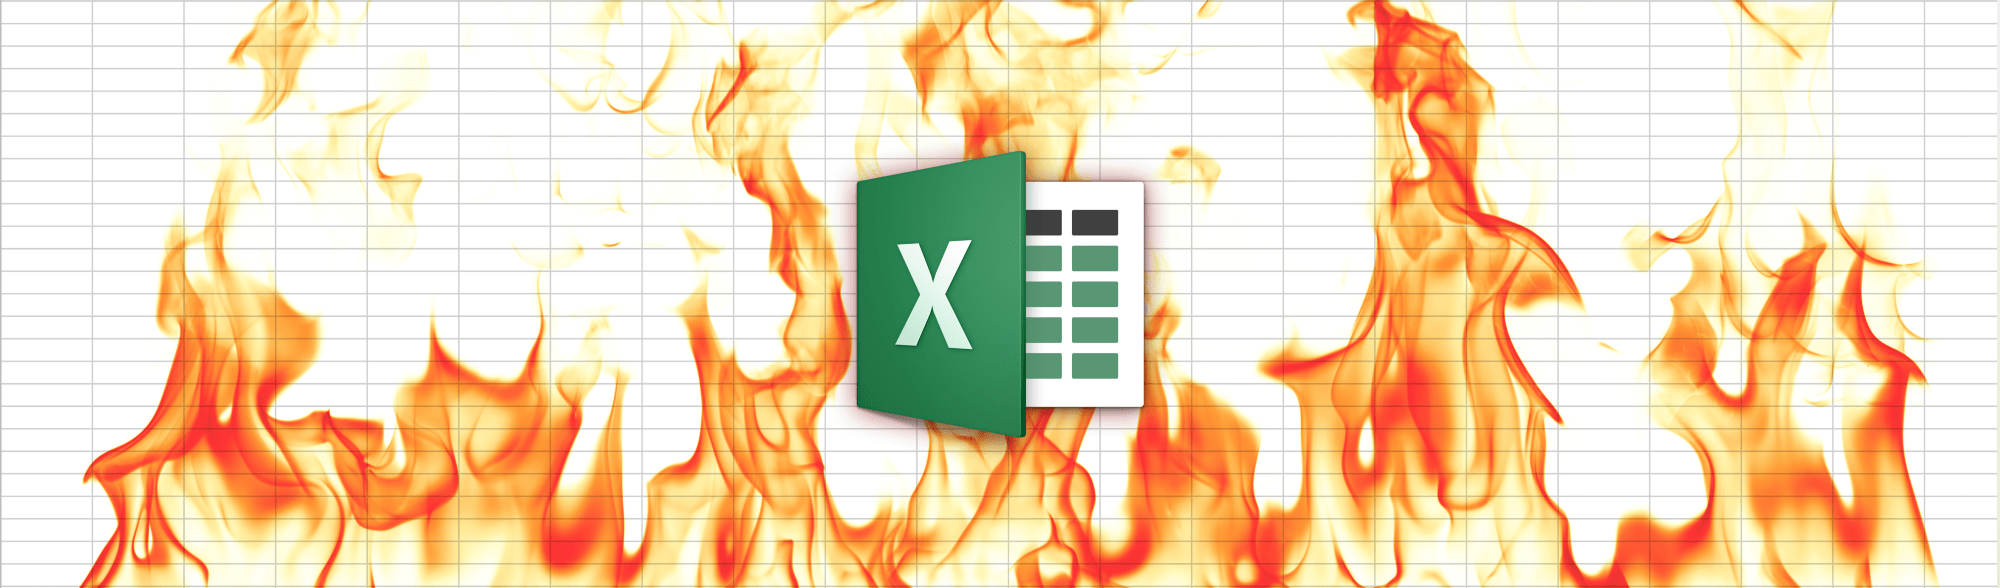 From Excel-Hell to cloud database heaven - restdb.io blogpost